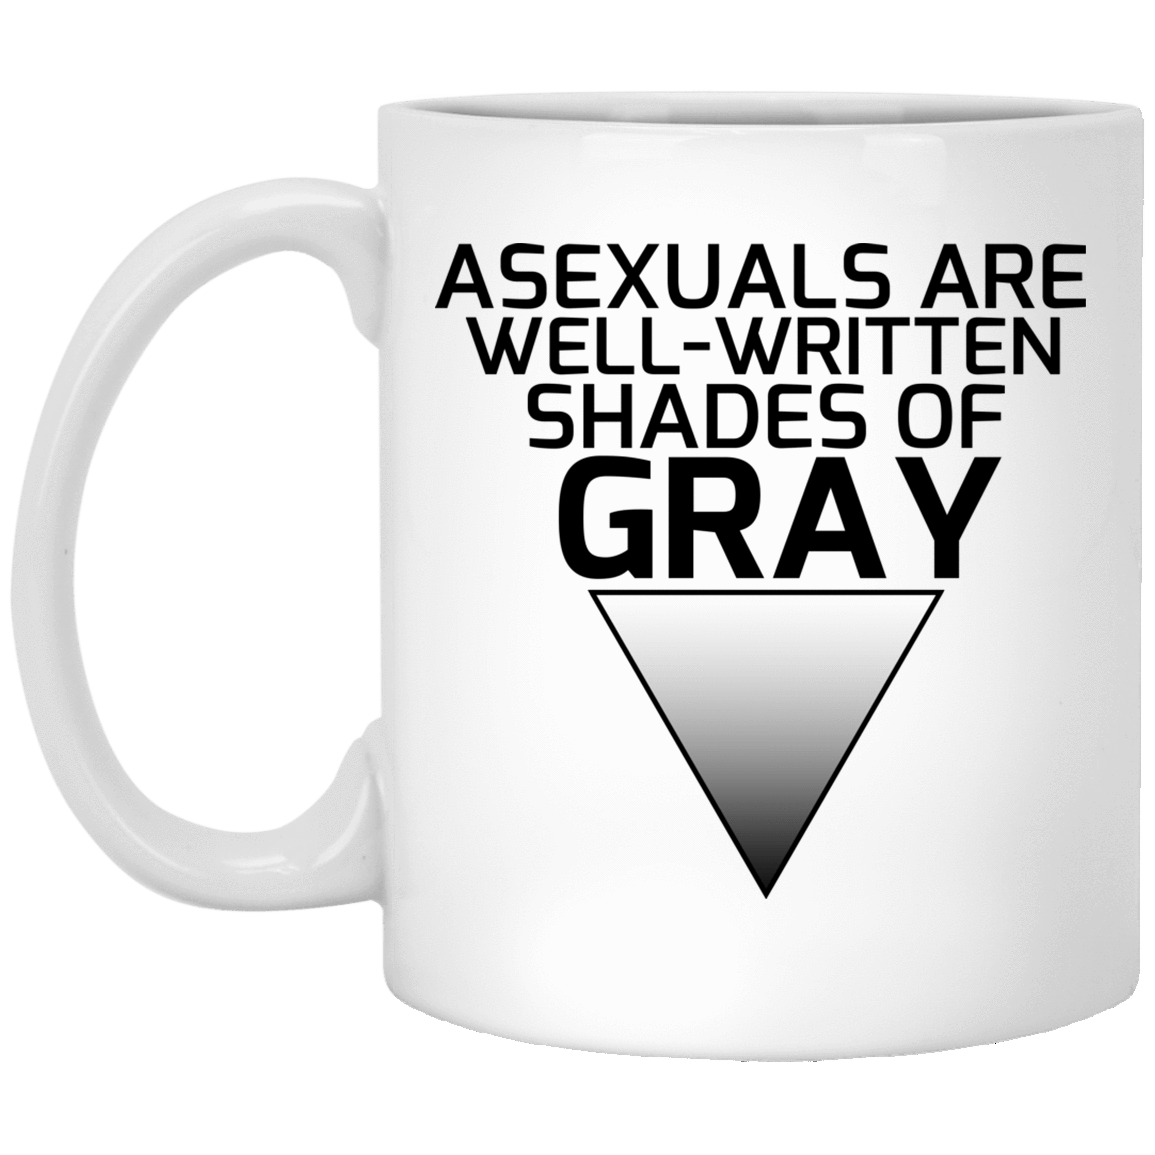 Asexuals Are Well Written Shades Of Gray White Mug 1005-9786-93051364-47417 - Tee Ript